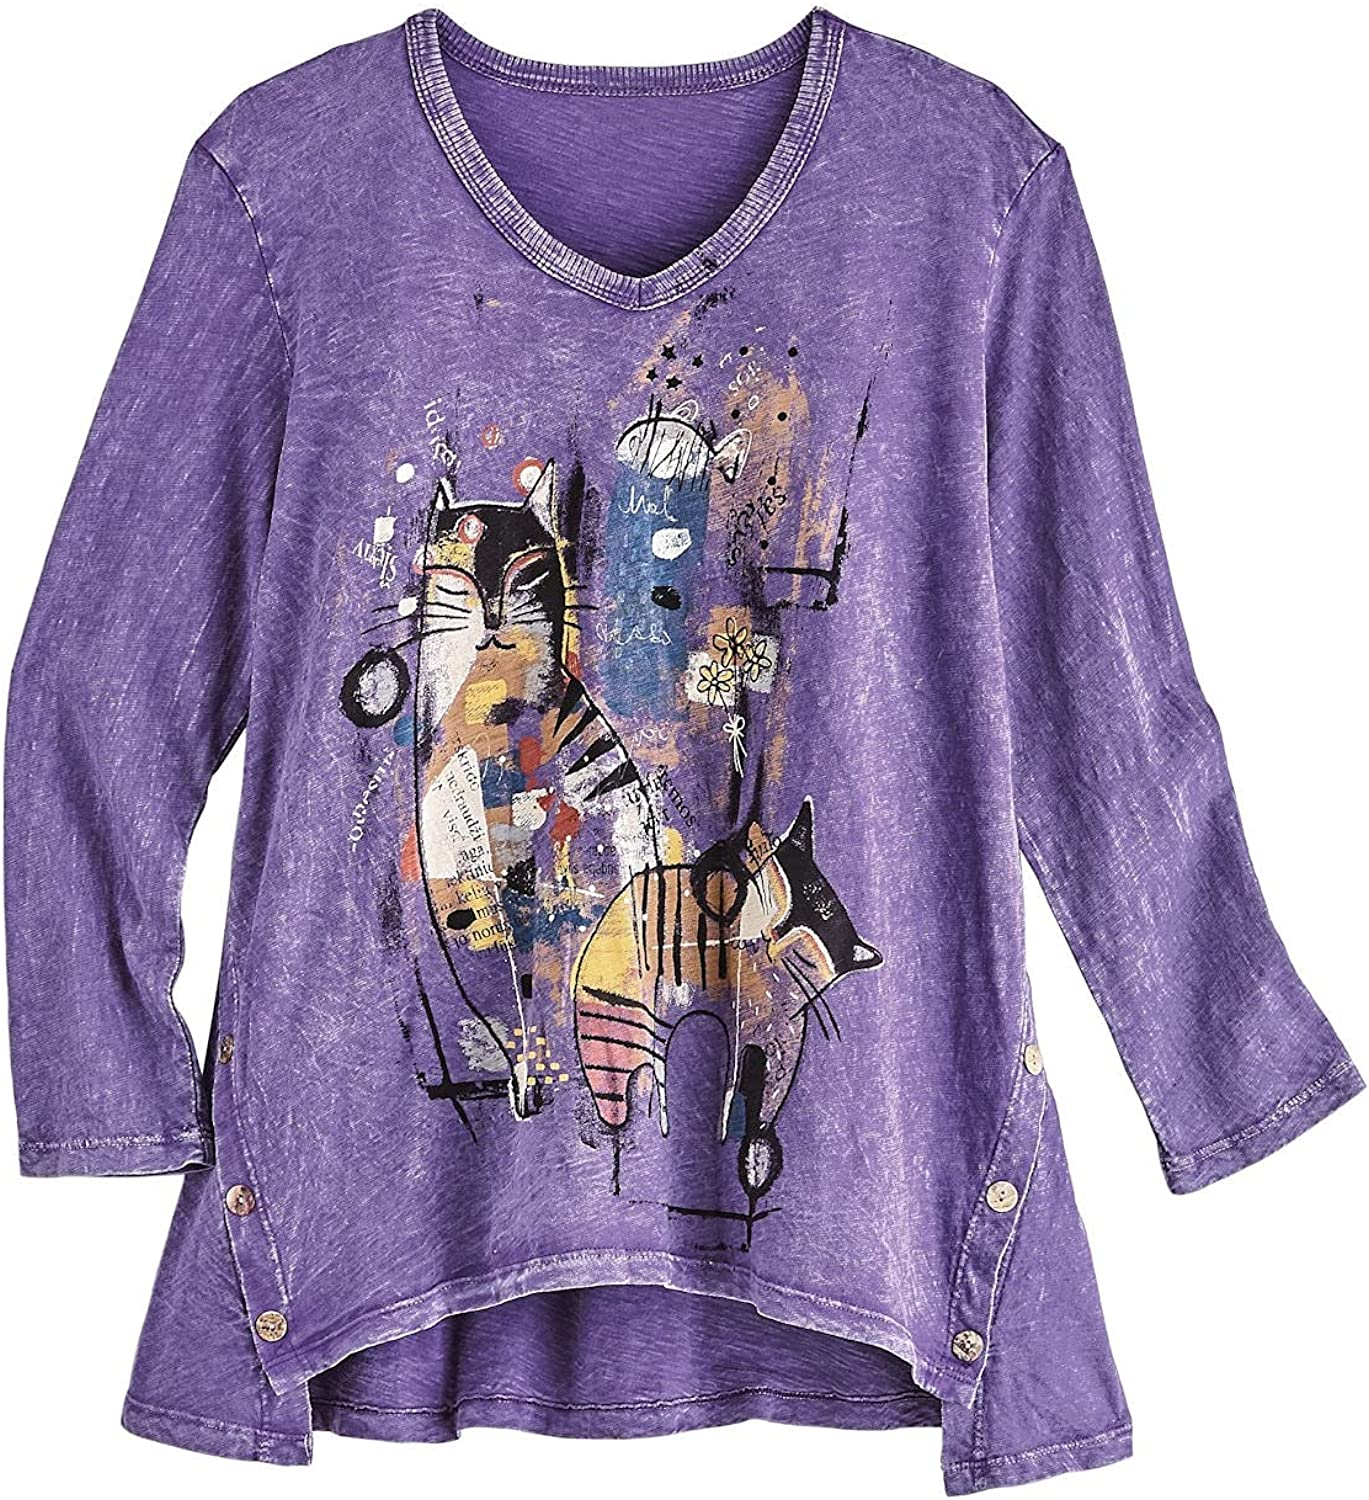 Jess & Jane Women's Cat Tunic - Abstract Purple Mineral Washed Top, 3/4 Sleeve